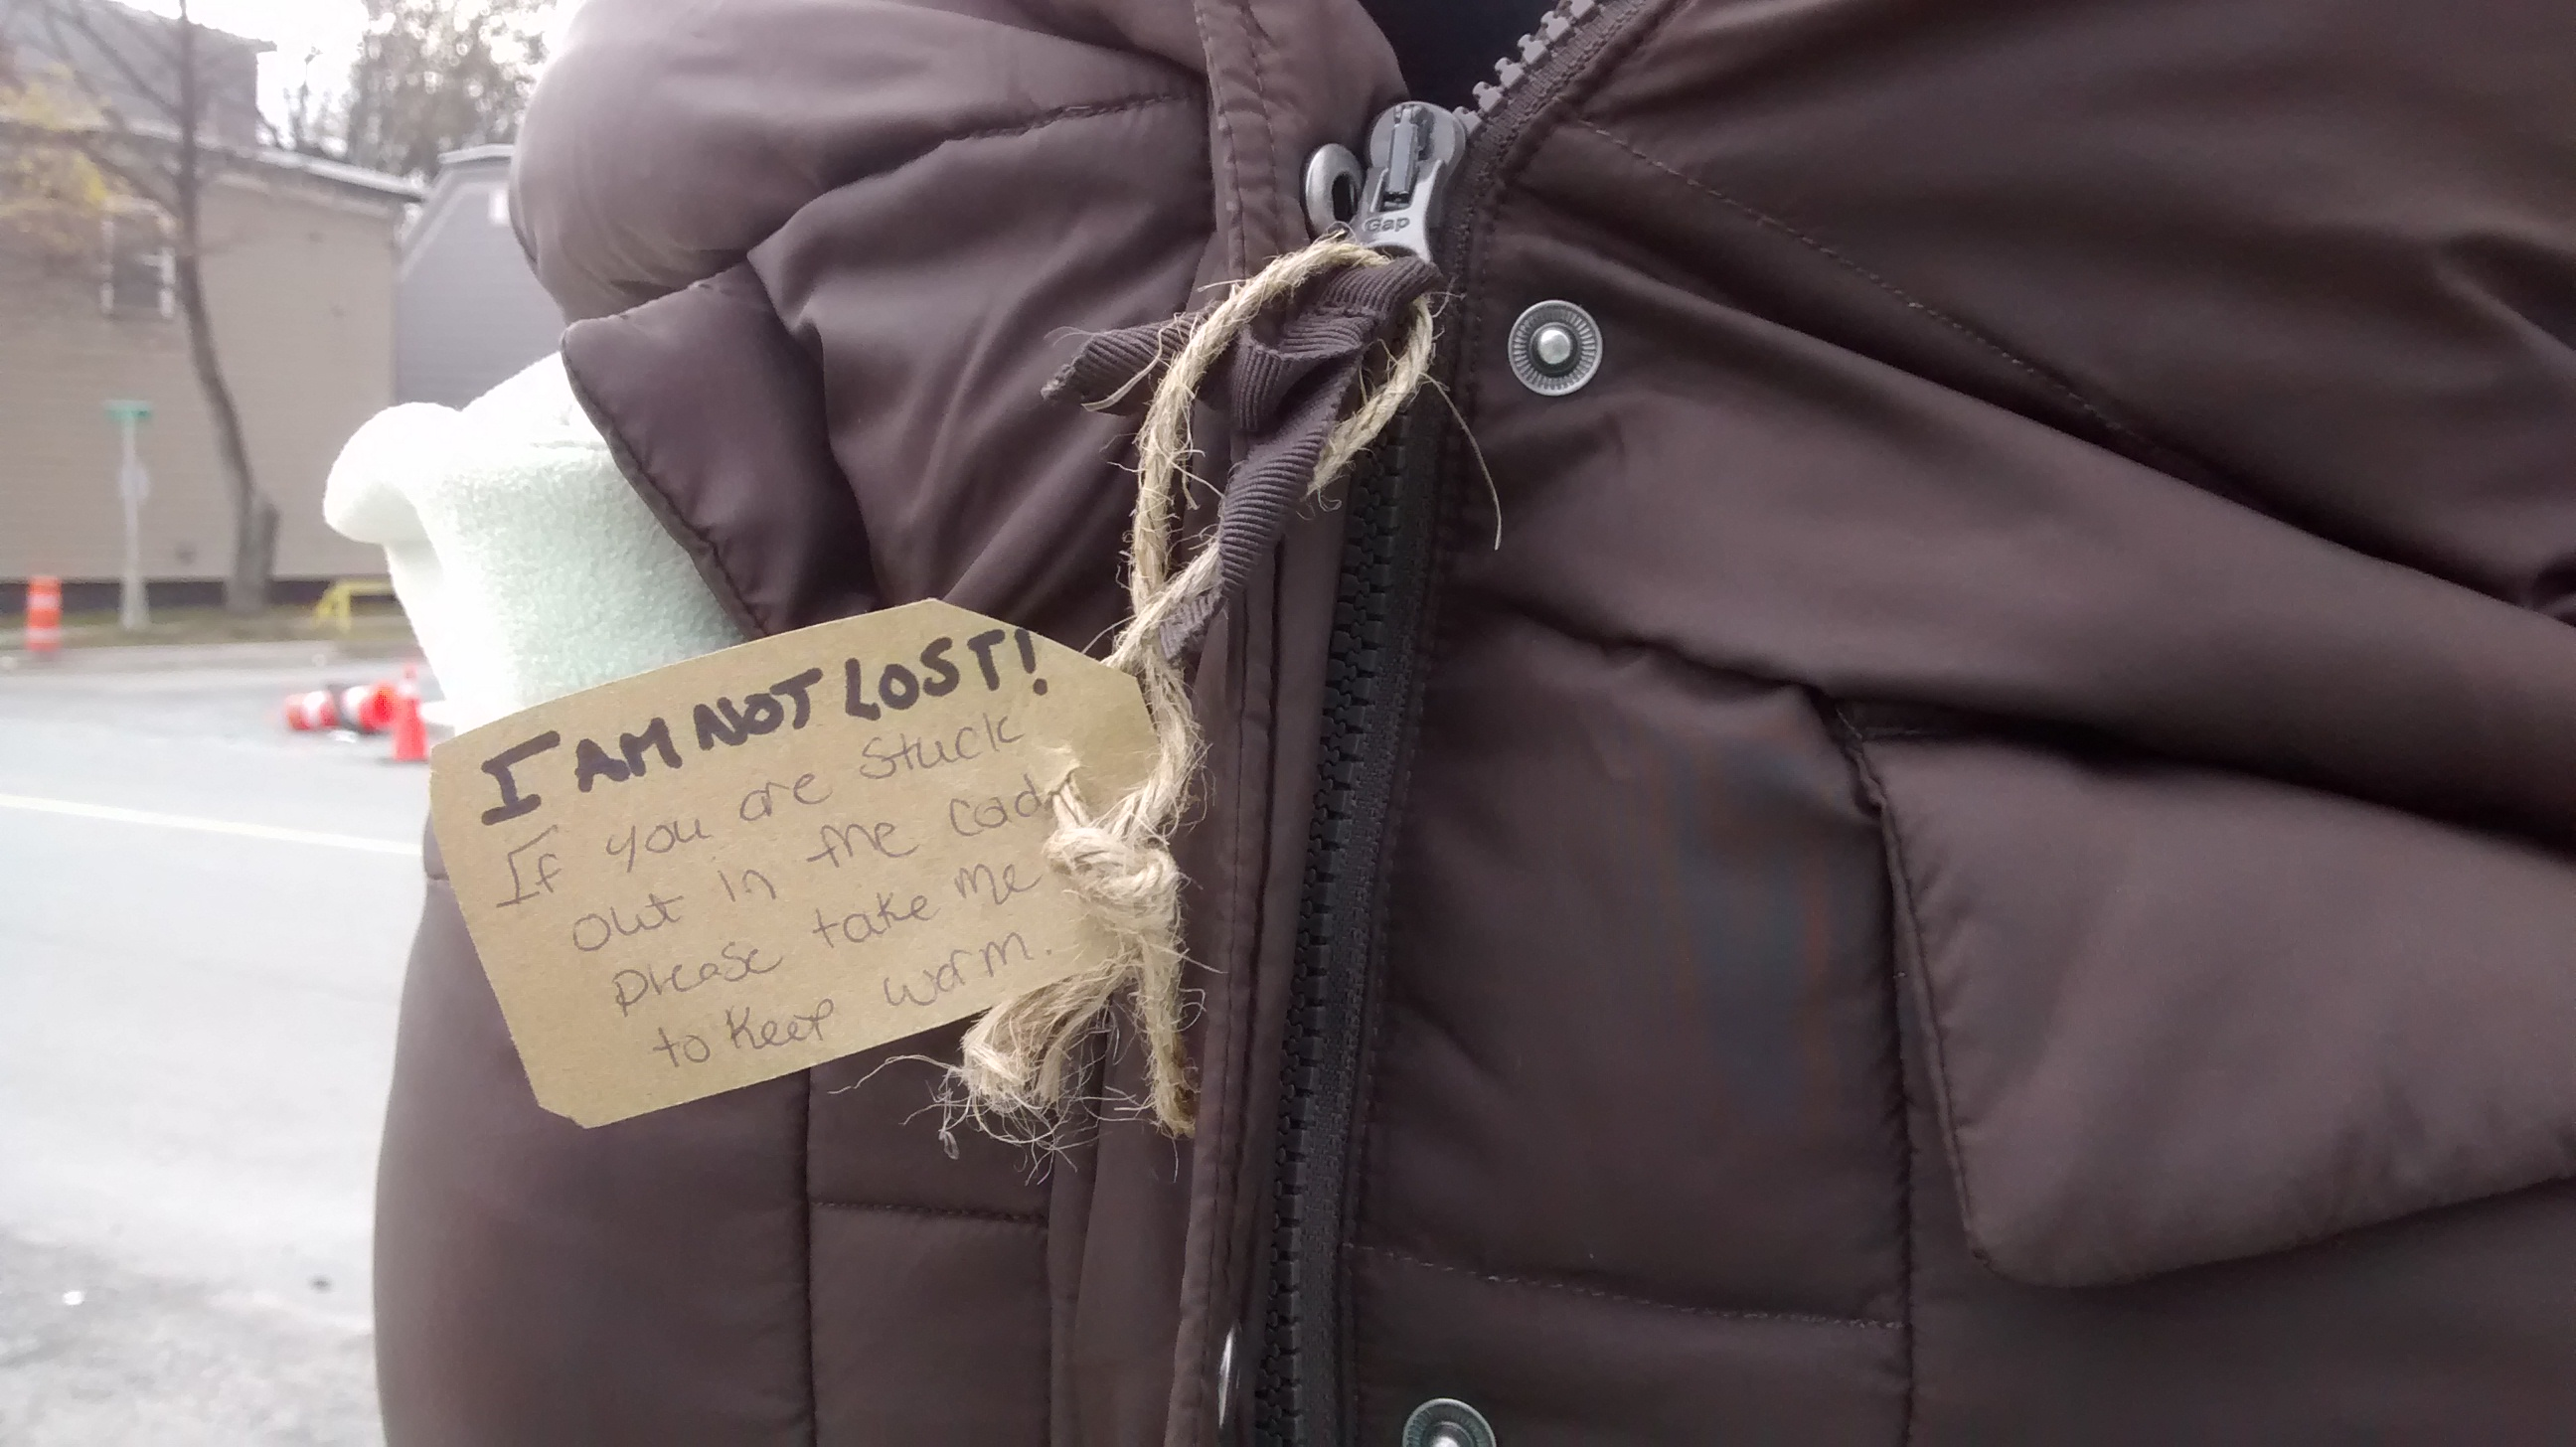 Caledonia students left arm jackets on telephone poles on Halifax streets. Tags on the coats let people know the items were free to take.